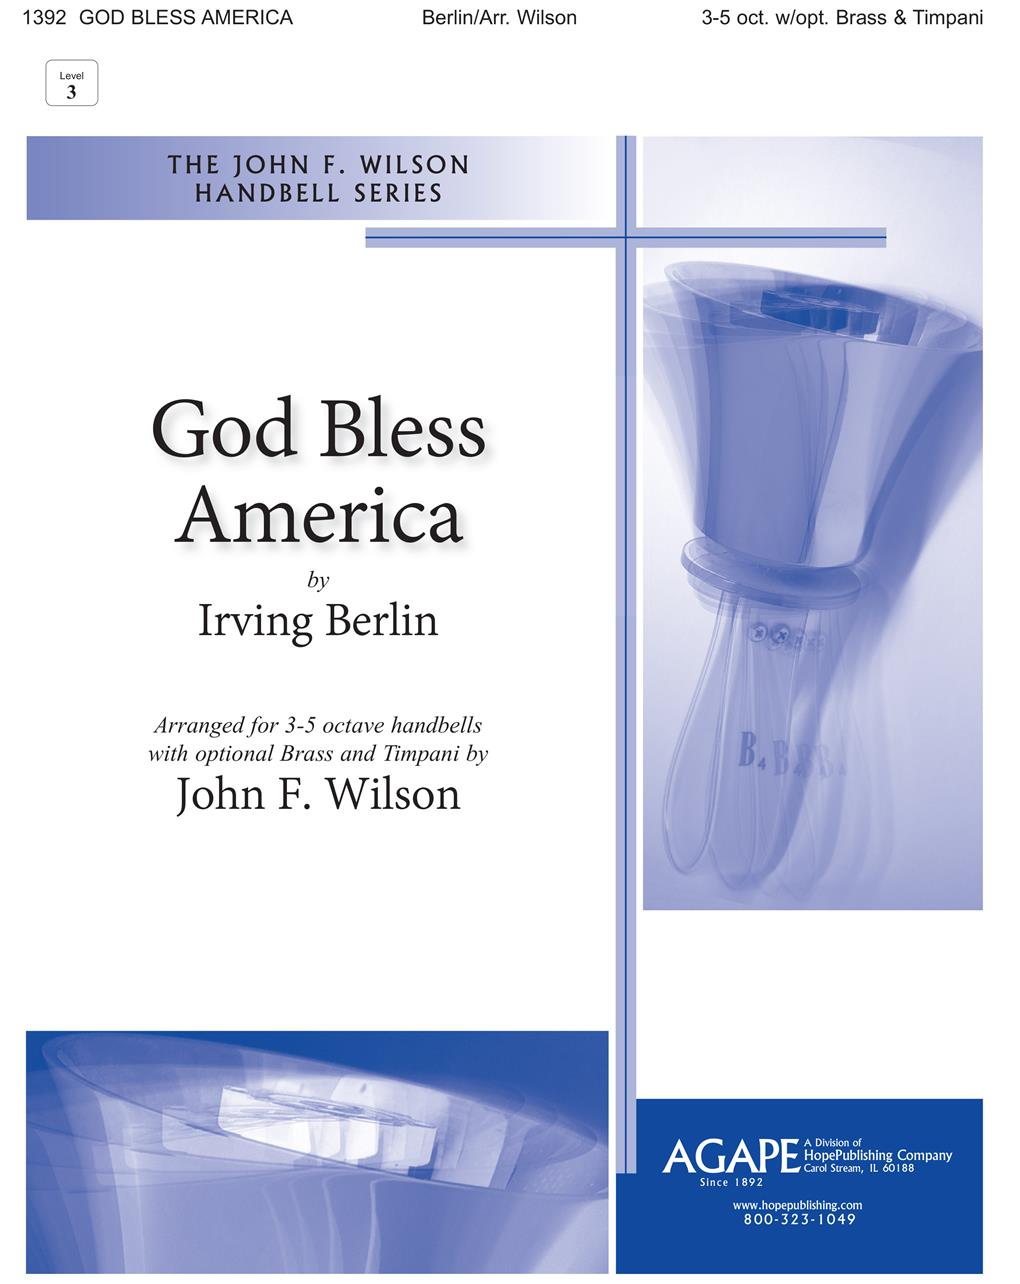 God Bless America - 3-5 Octave Cover Image